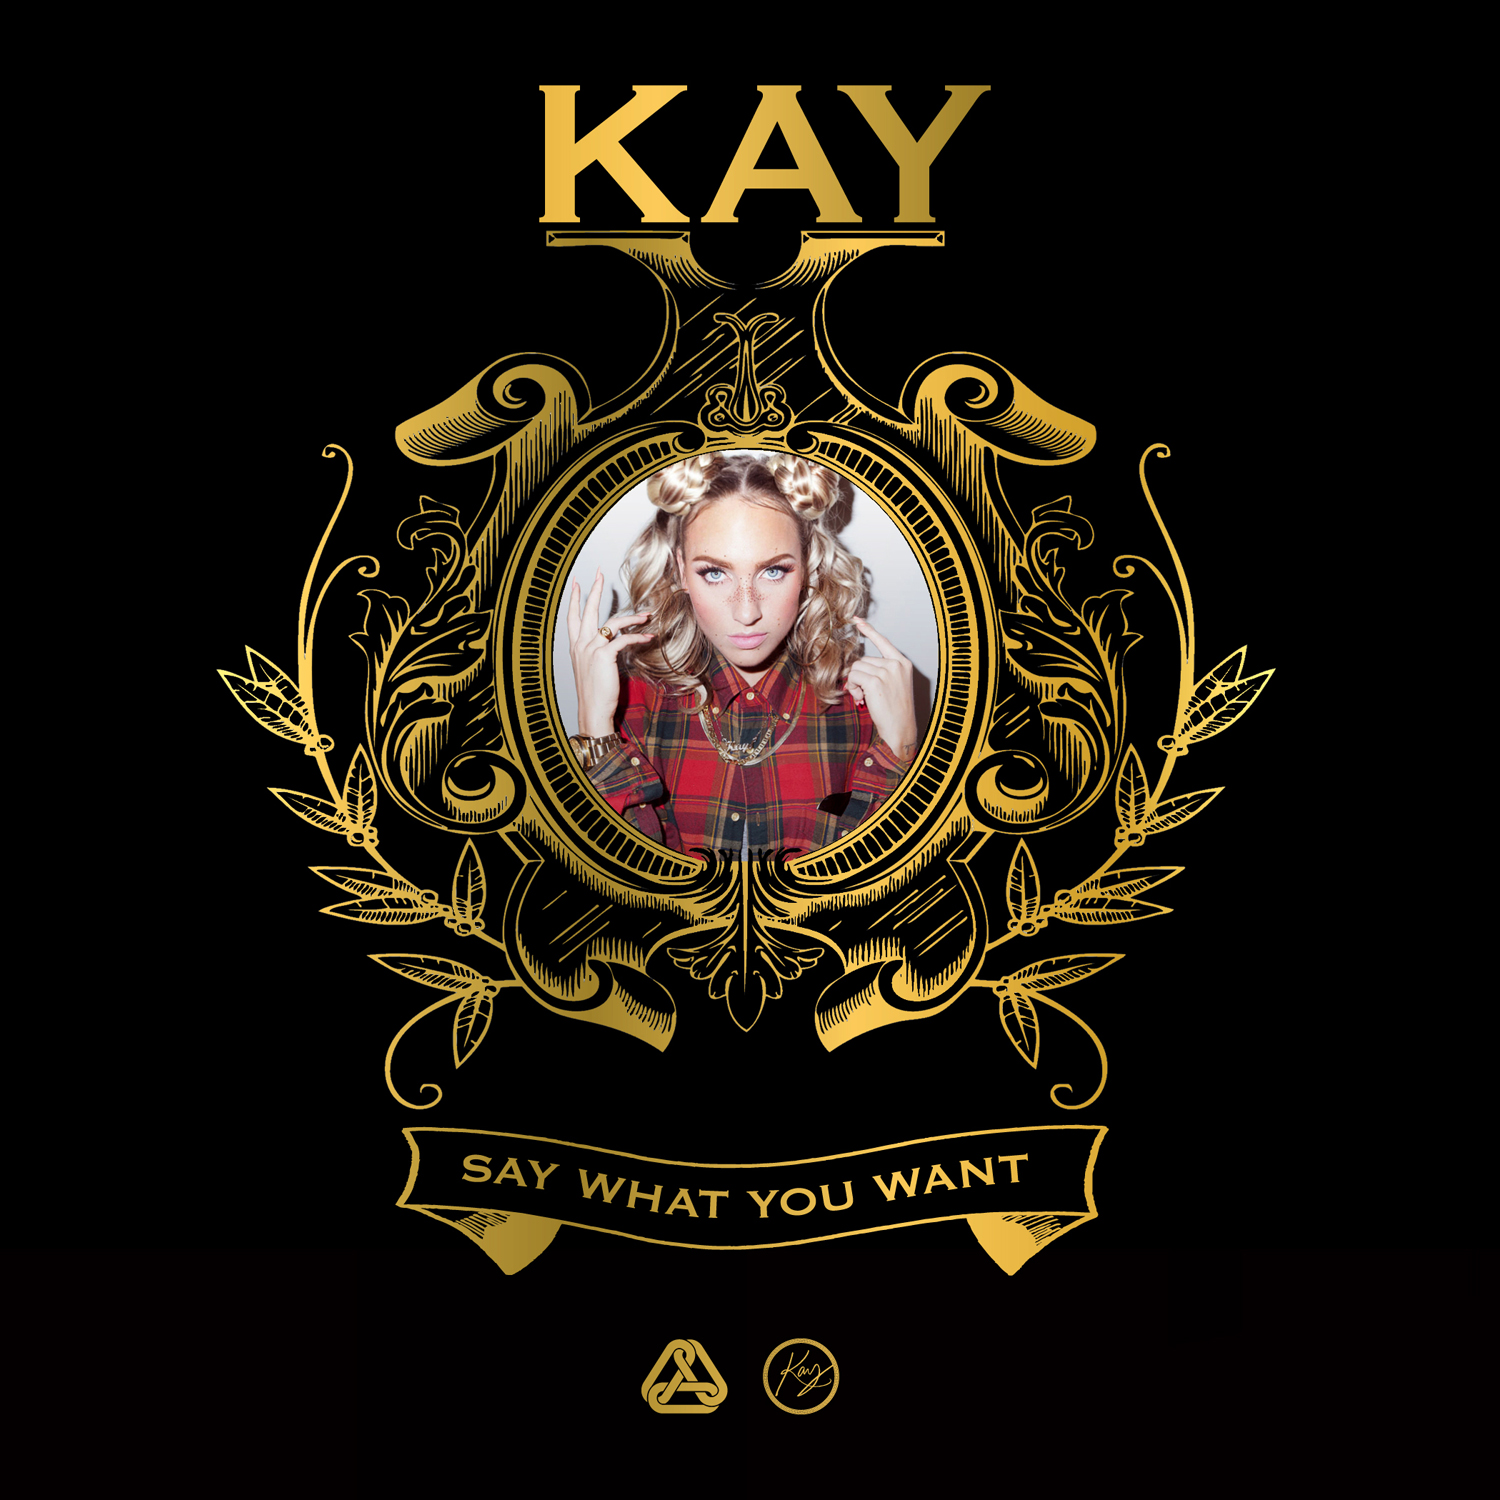 Kay_Say_What_You_Want_EP